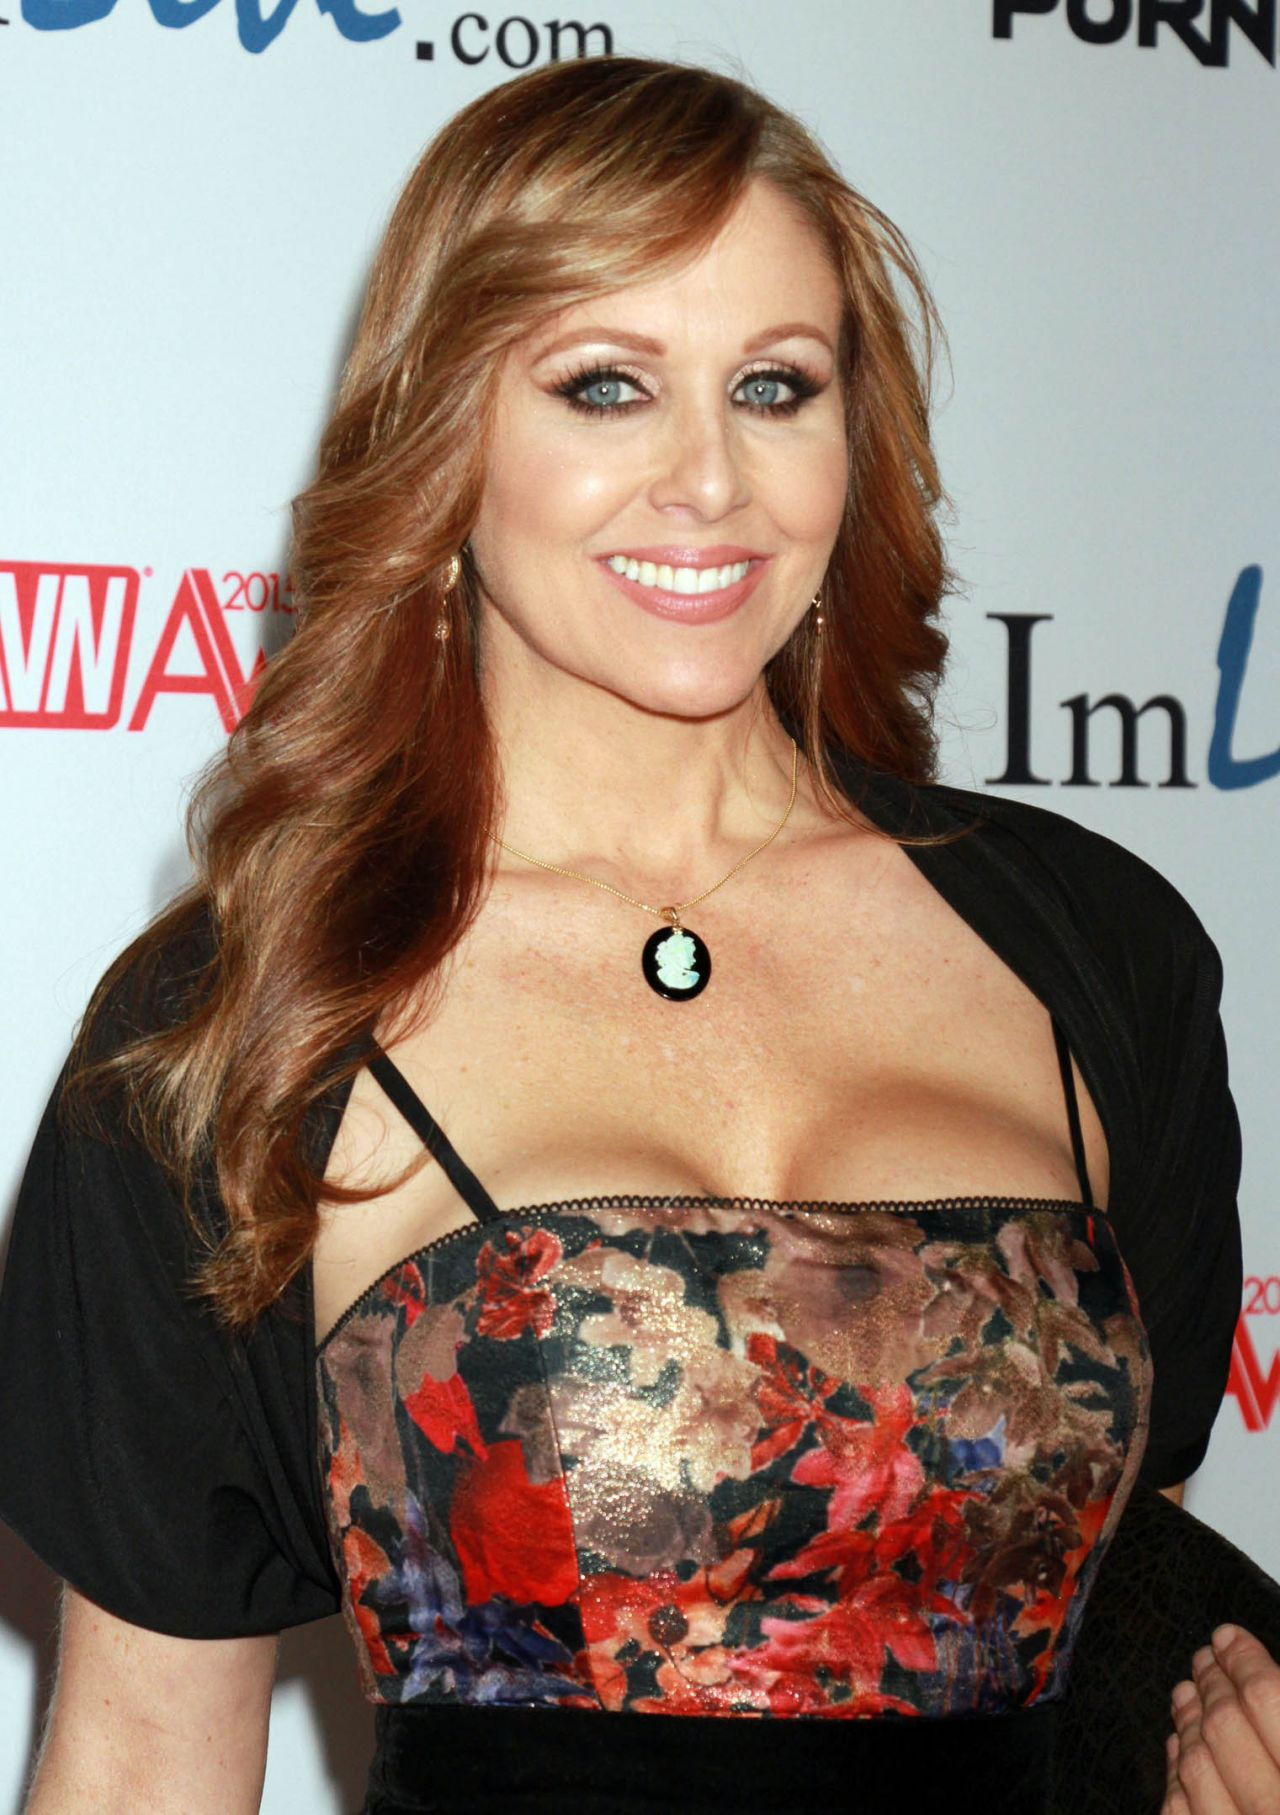 Julia Ann – 2015 AVN Awards in Las Vegas